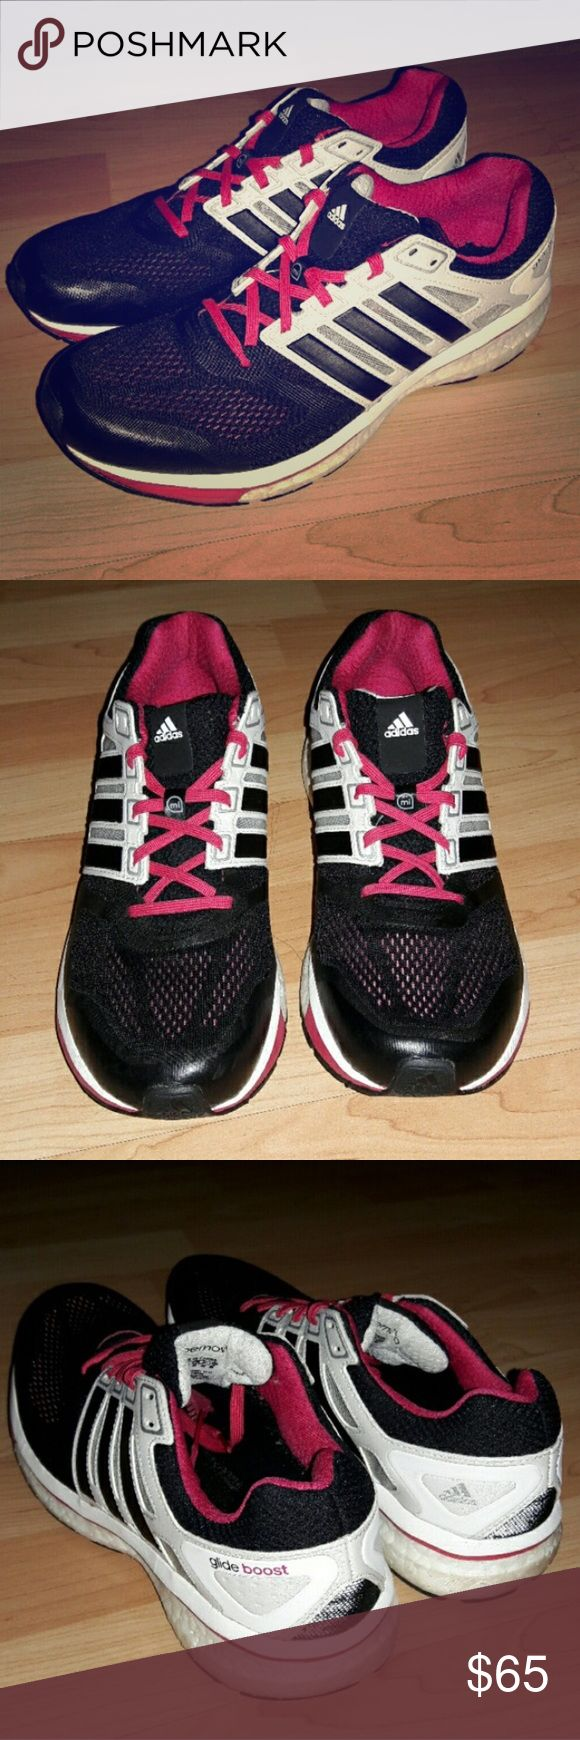 Adidas Supernova Glide Boost 6 Worn a couple of times but I just don't like them as much as the Asics I usually run in. I removed the insoles for hygienic reasons but you can buy new ones for $10 at a sport store. Adidas Shoes Sneakers